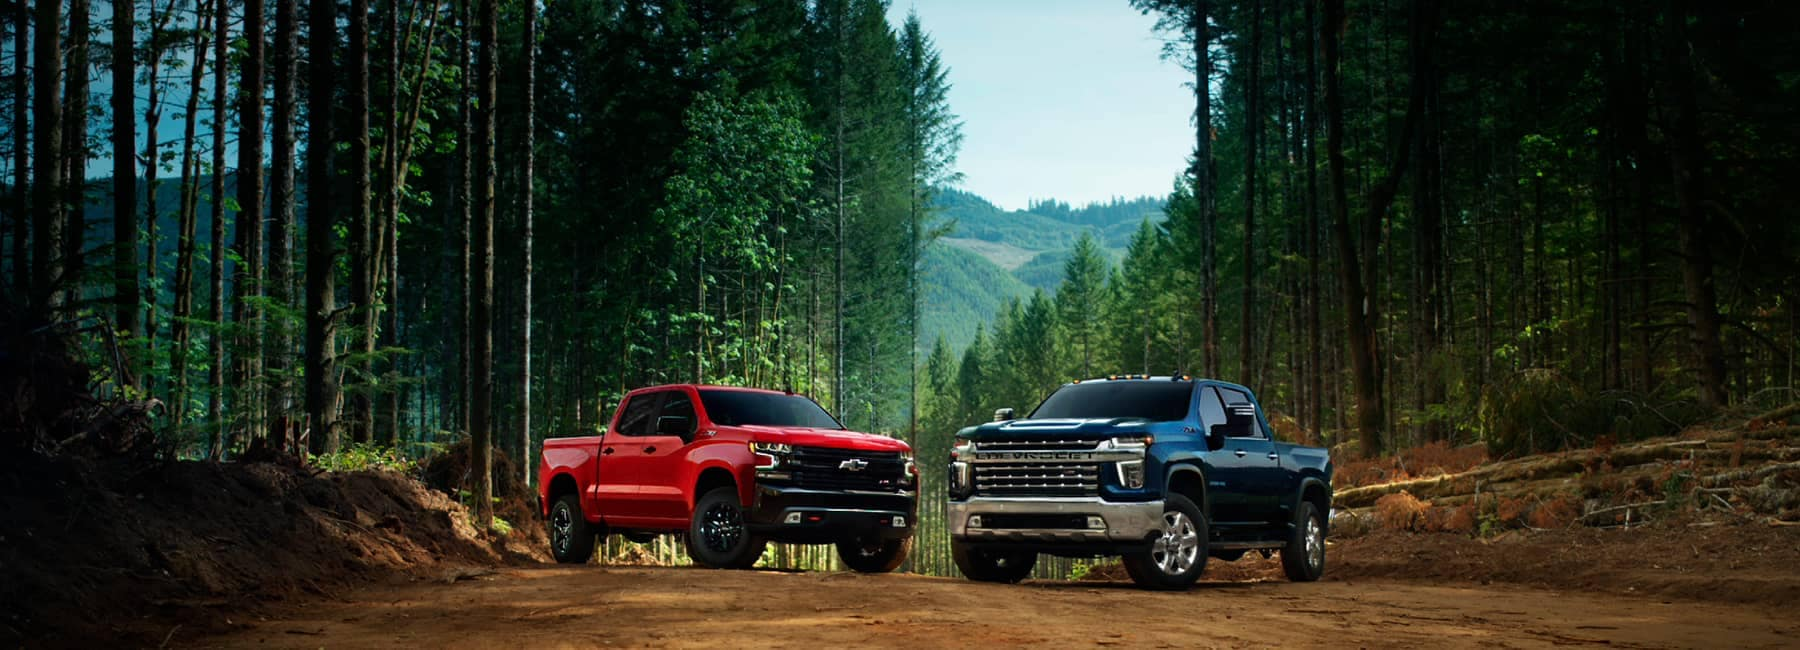 2021 Chevrolet Silverado Lineup parked in a wooded area